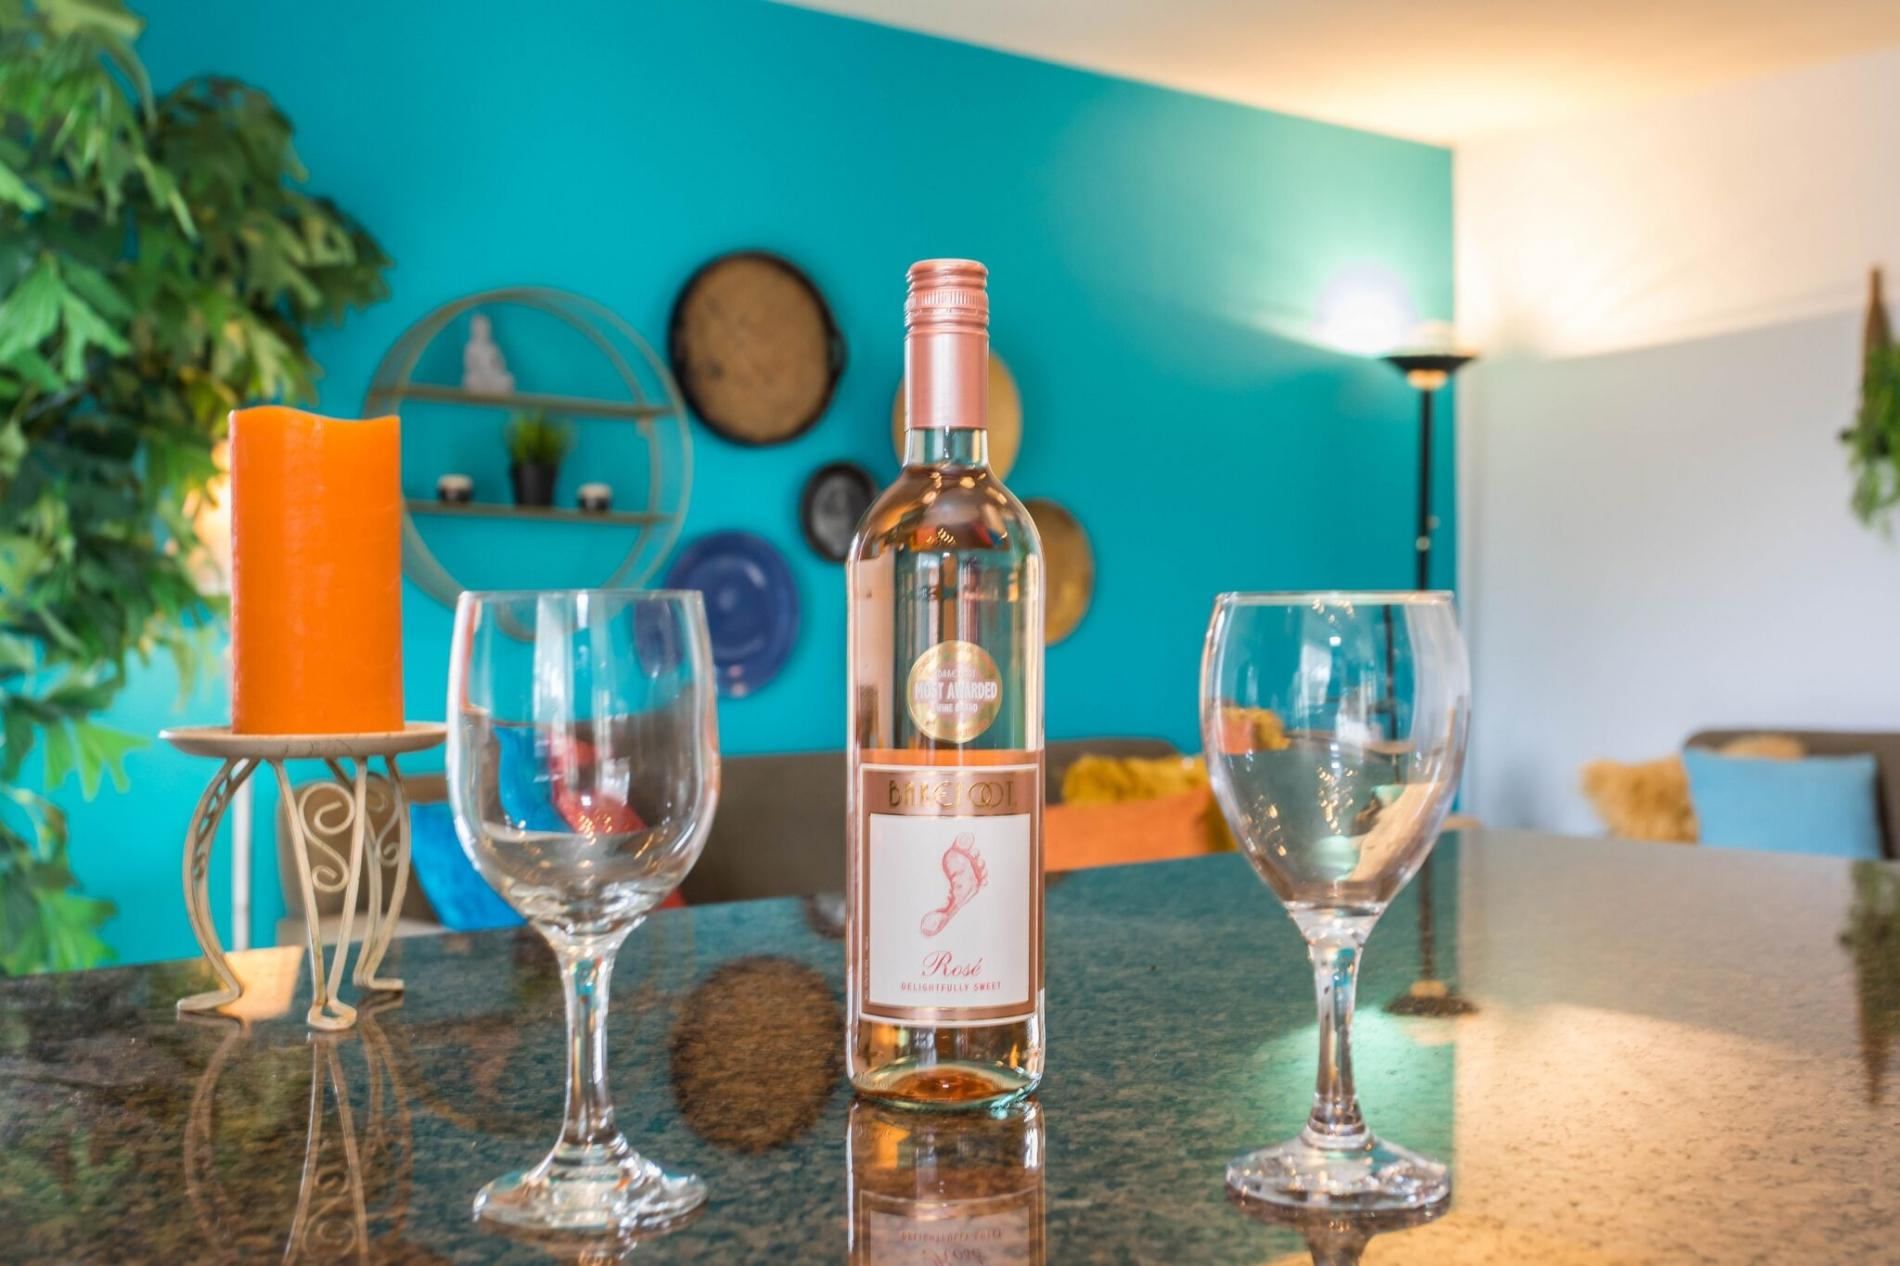 Apartment Namaste Drink Rose - Mins from Wineries photo 20726758